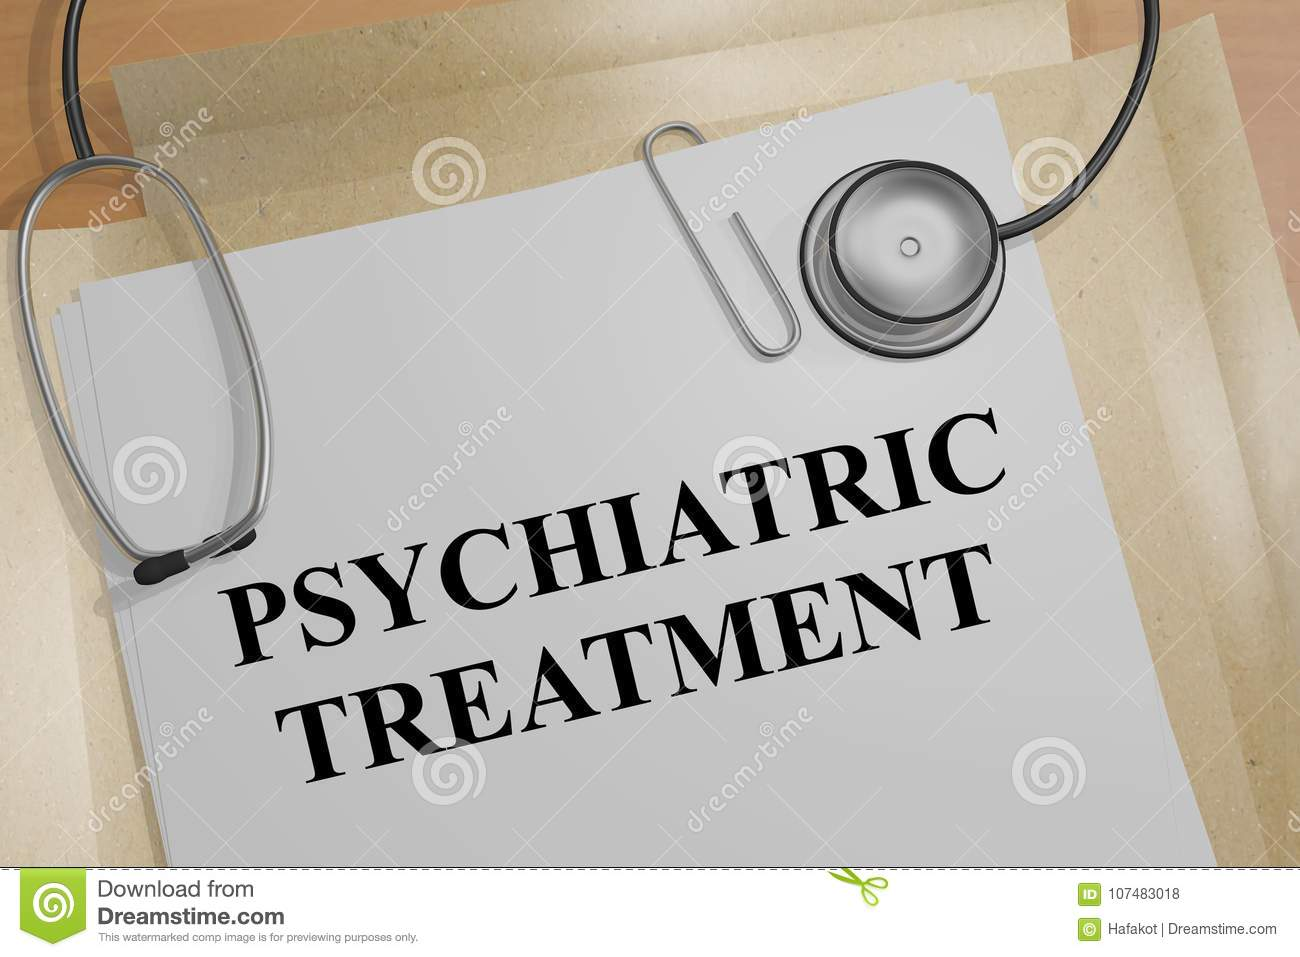 New Life Psychiatry REHAB & De-addiction centre  | NEW LIFE HOSPITAL, REHABILITATION & DE ADDICTION CENTER | psychiatrist in pune, md psychiatrist, psychiatrist in pcmc, psychiatrist in maharashtra, best psychiatrist in pune, best psychiatrist in pcmc, dr sudhir sontakke md, best psychiatrist in maharashtra, - GL97880